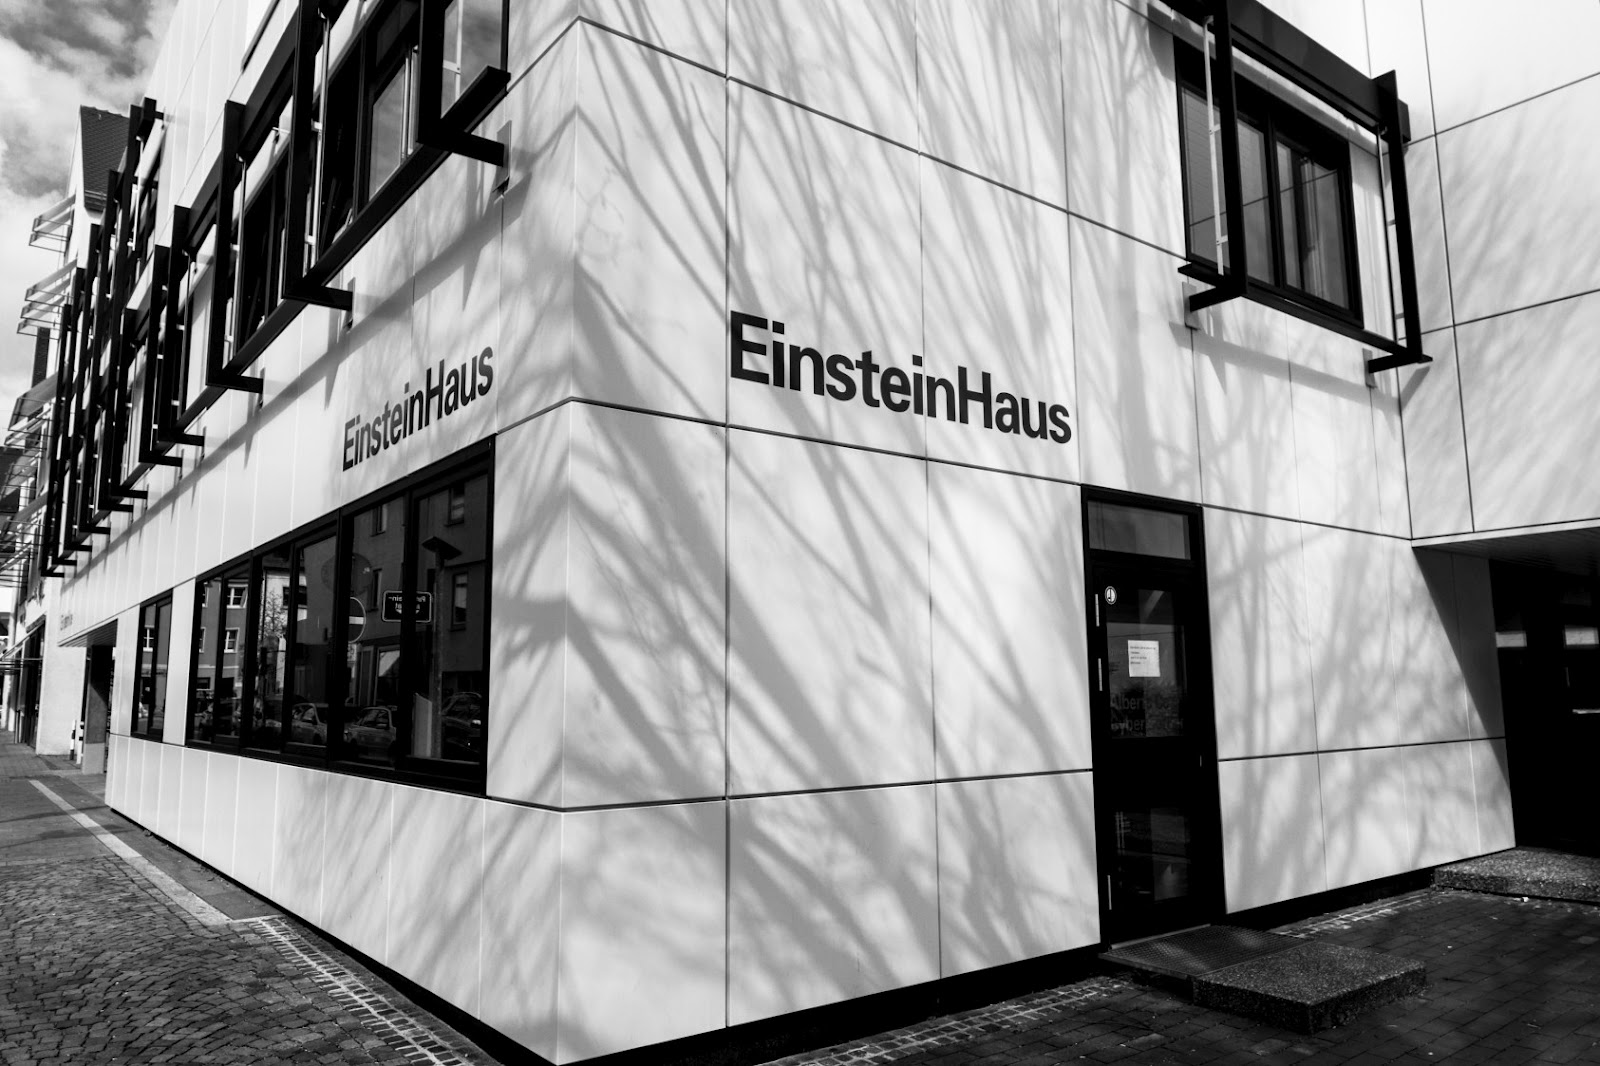 Einsteinhaus in Ulm ~ Matthew G Beall :: Vision Driven Photography